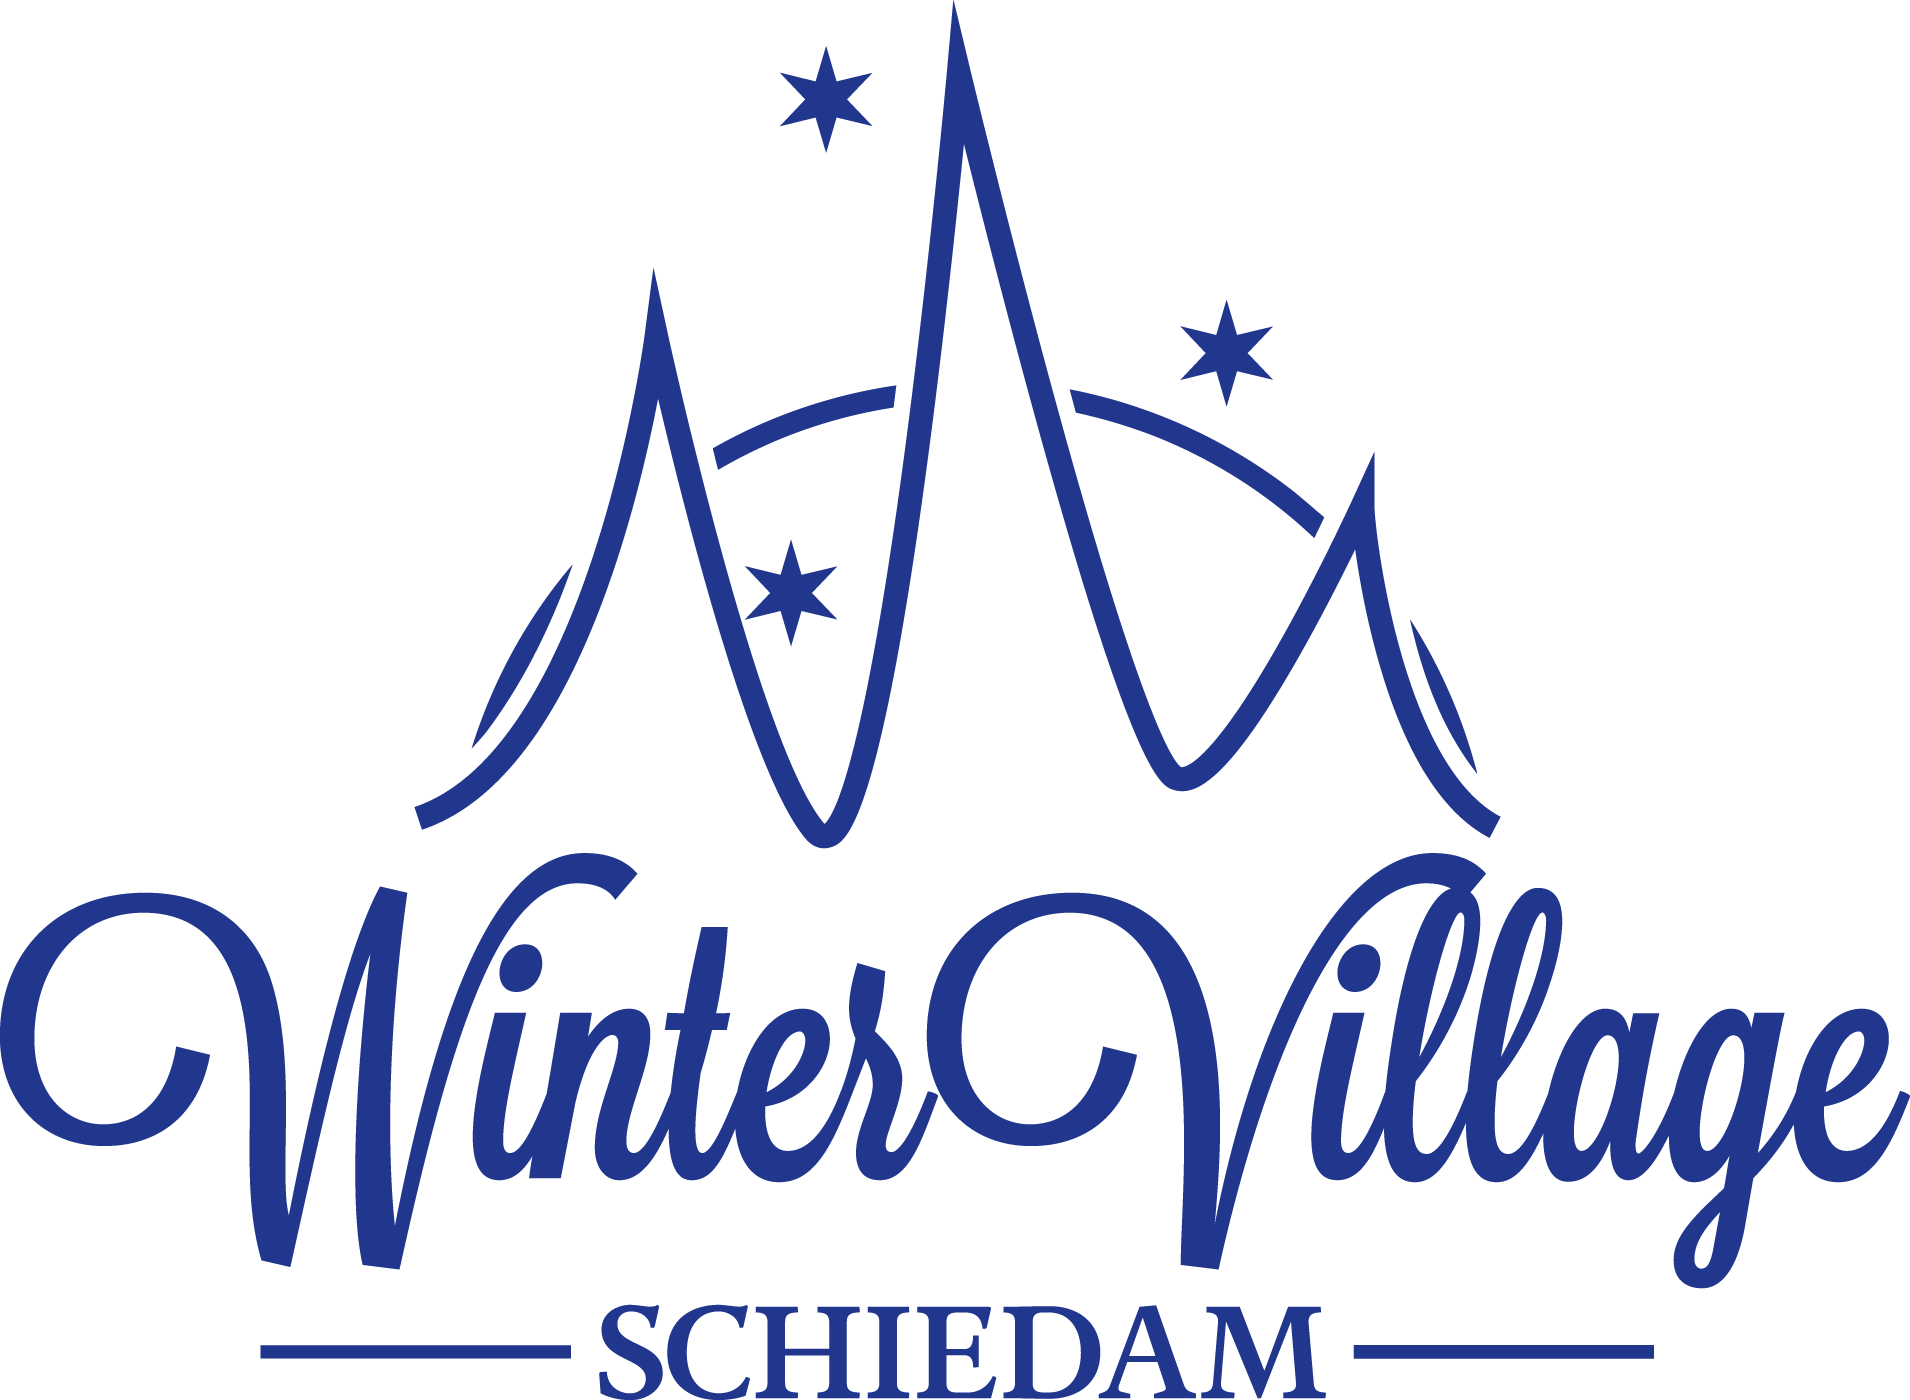 Winter Village Schiedam Logo